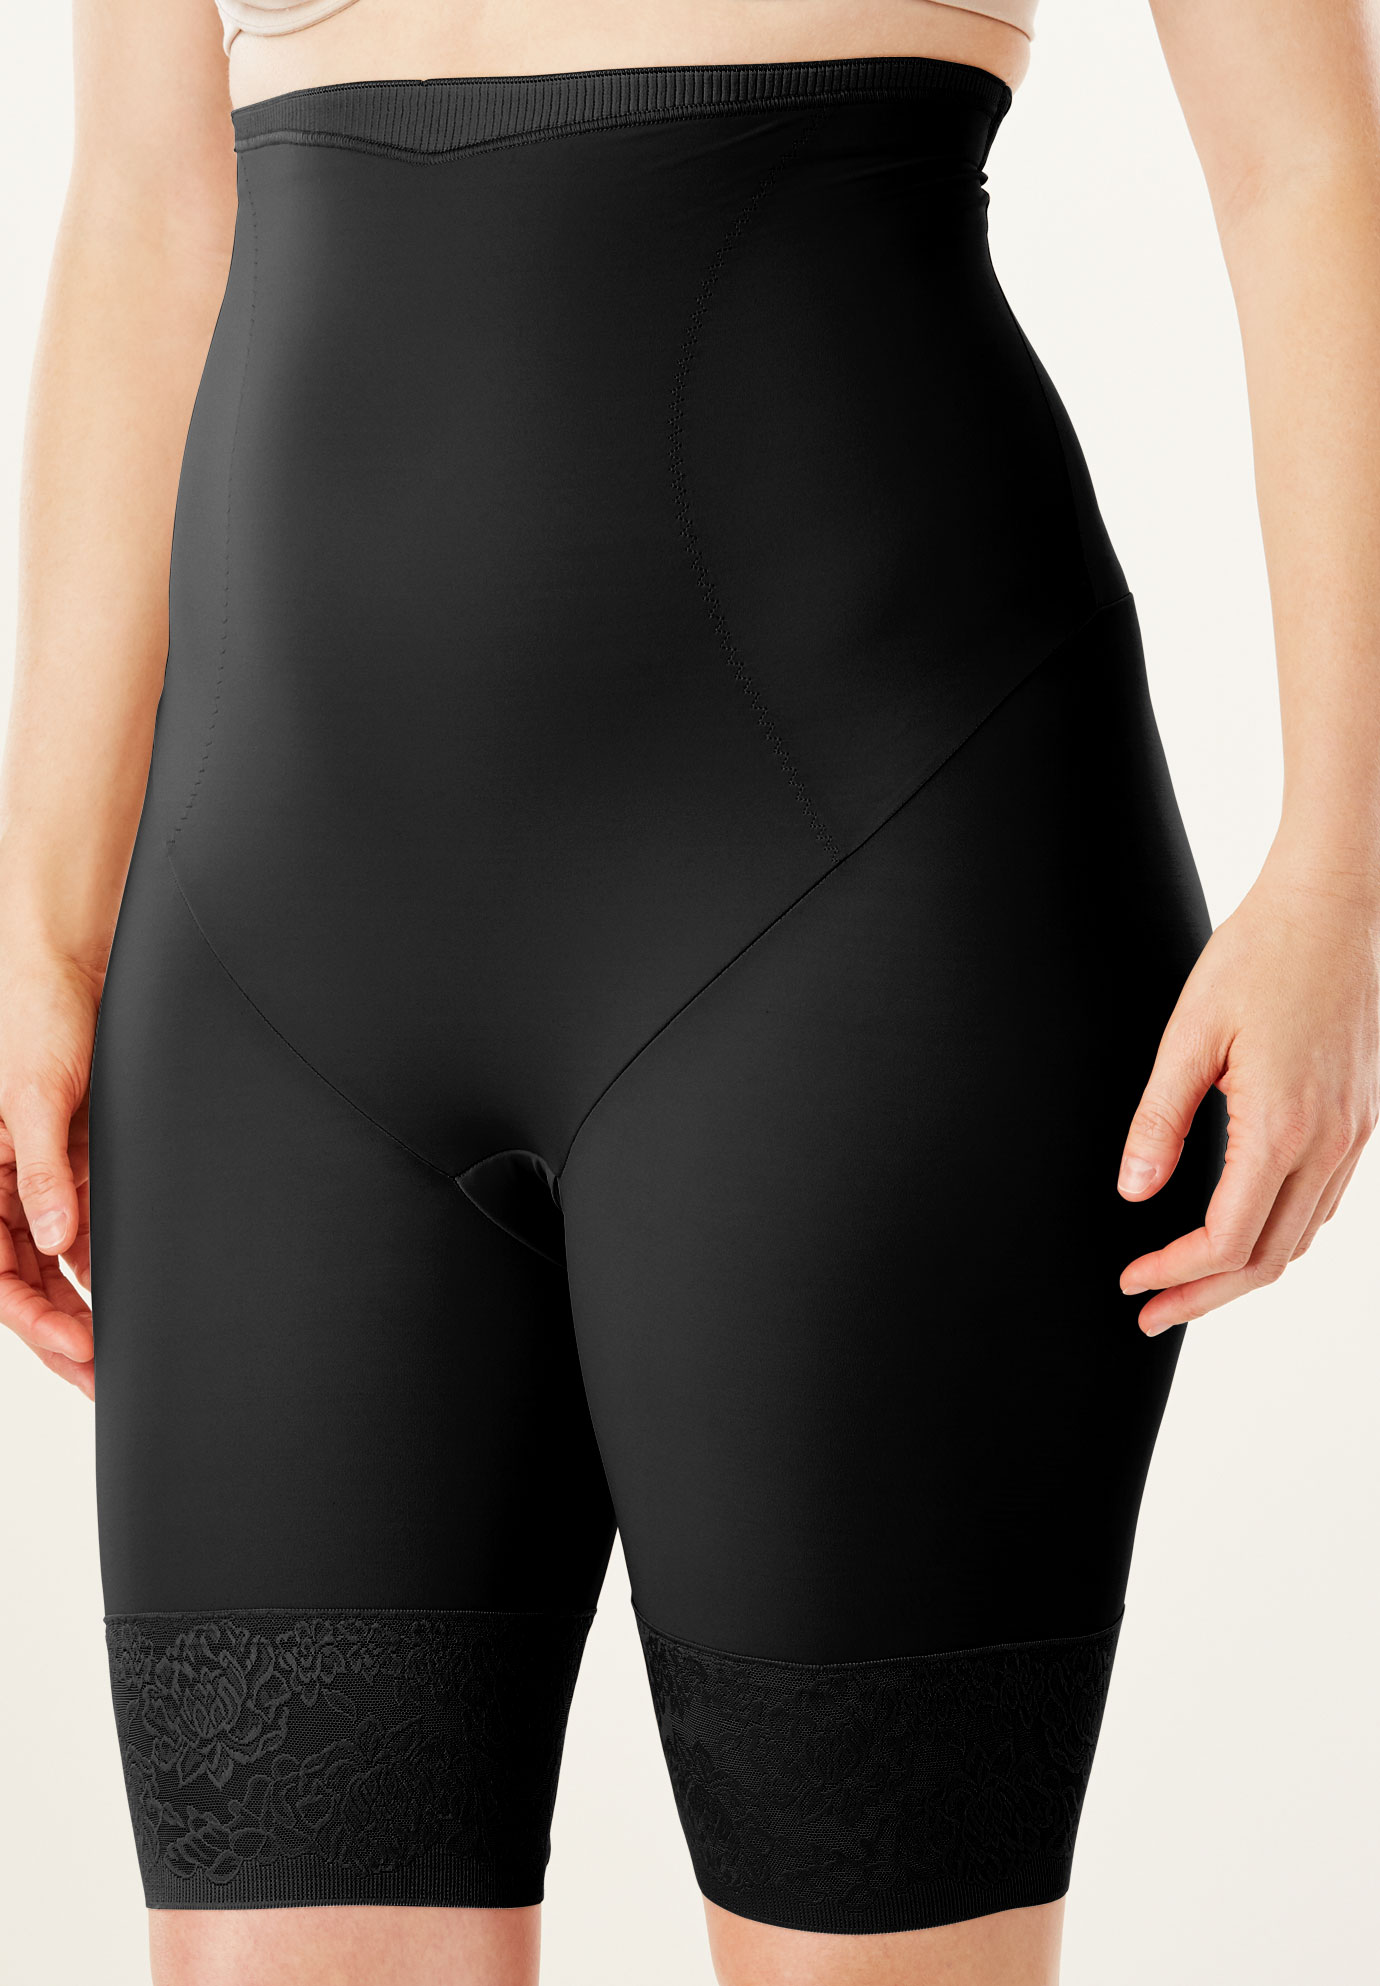 Firm Control Shaping Shorts by Maidenform®, BLACK